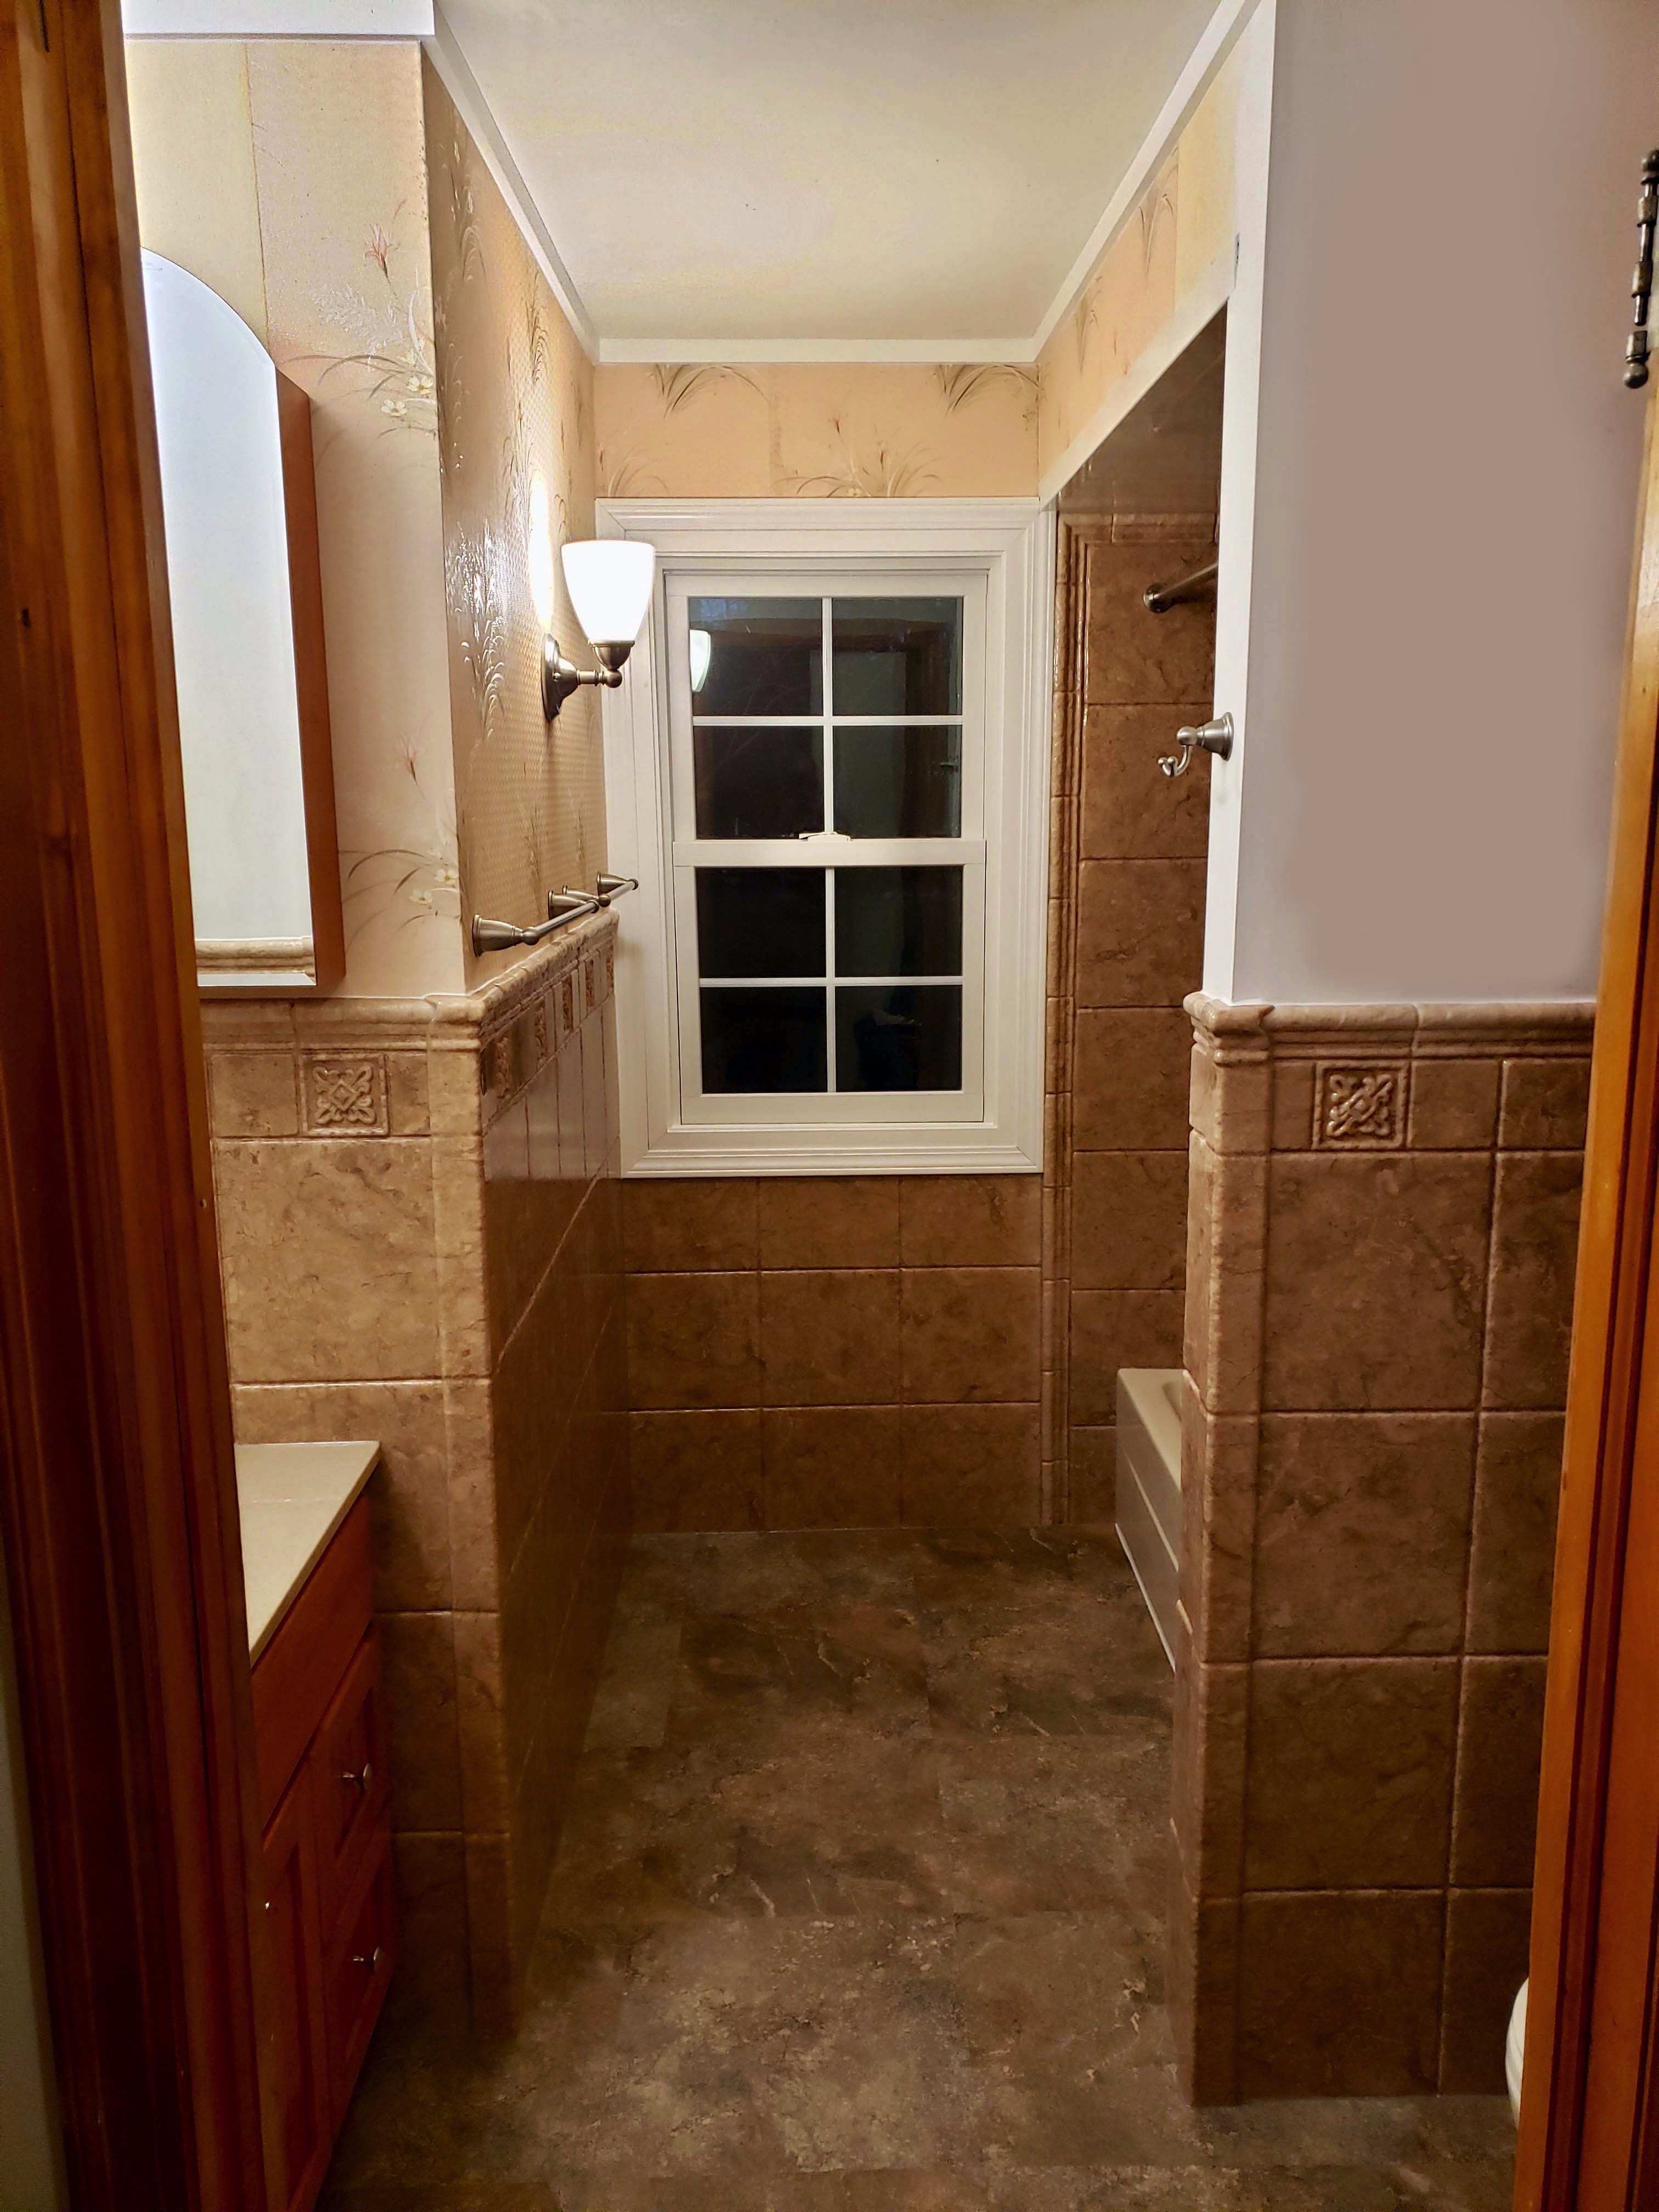 New Master Bathroom Remodel